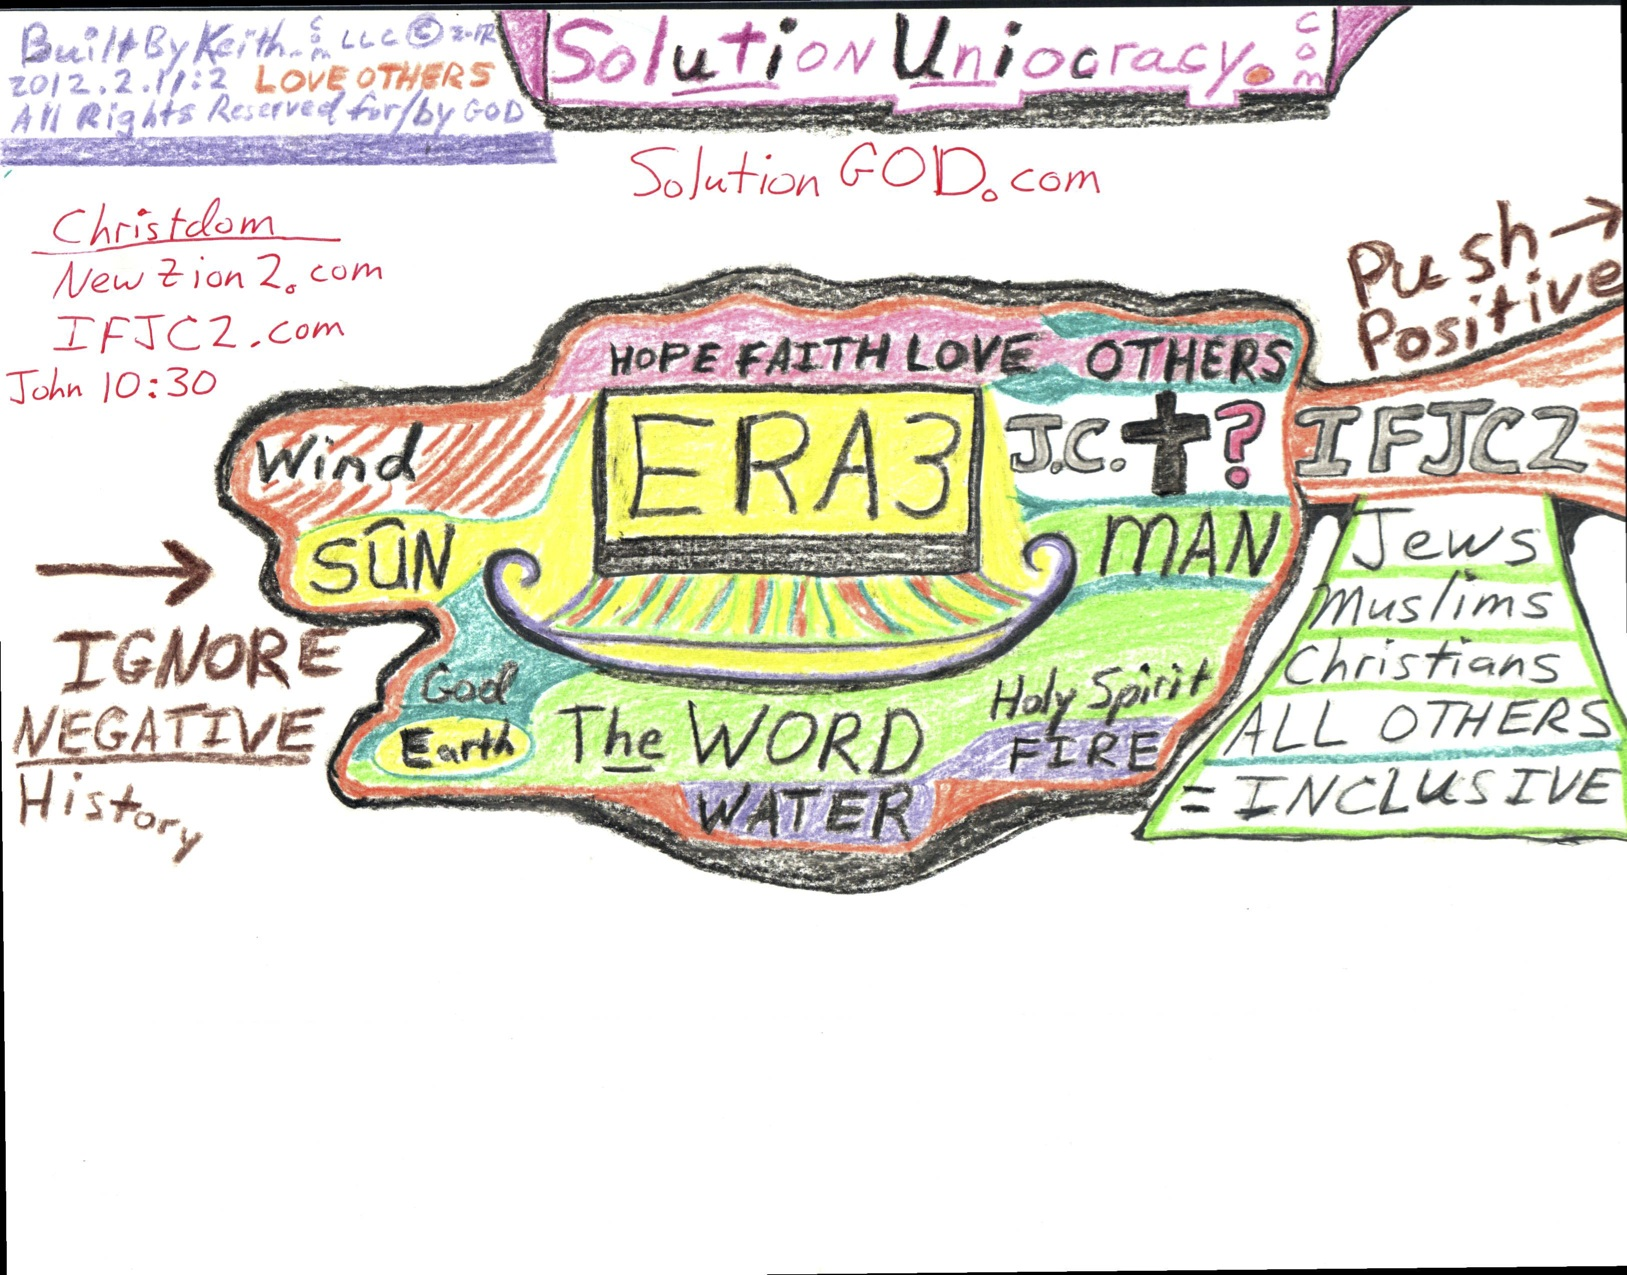 BBK20151123ERA3-SolutionGod-Diagram2012-12-04